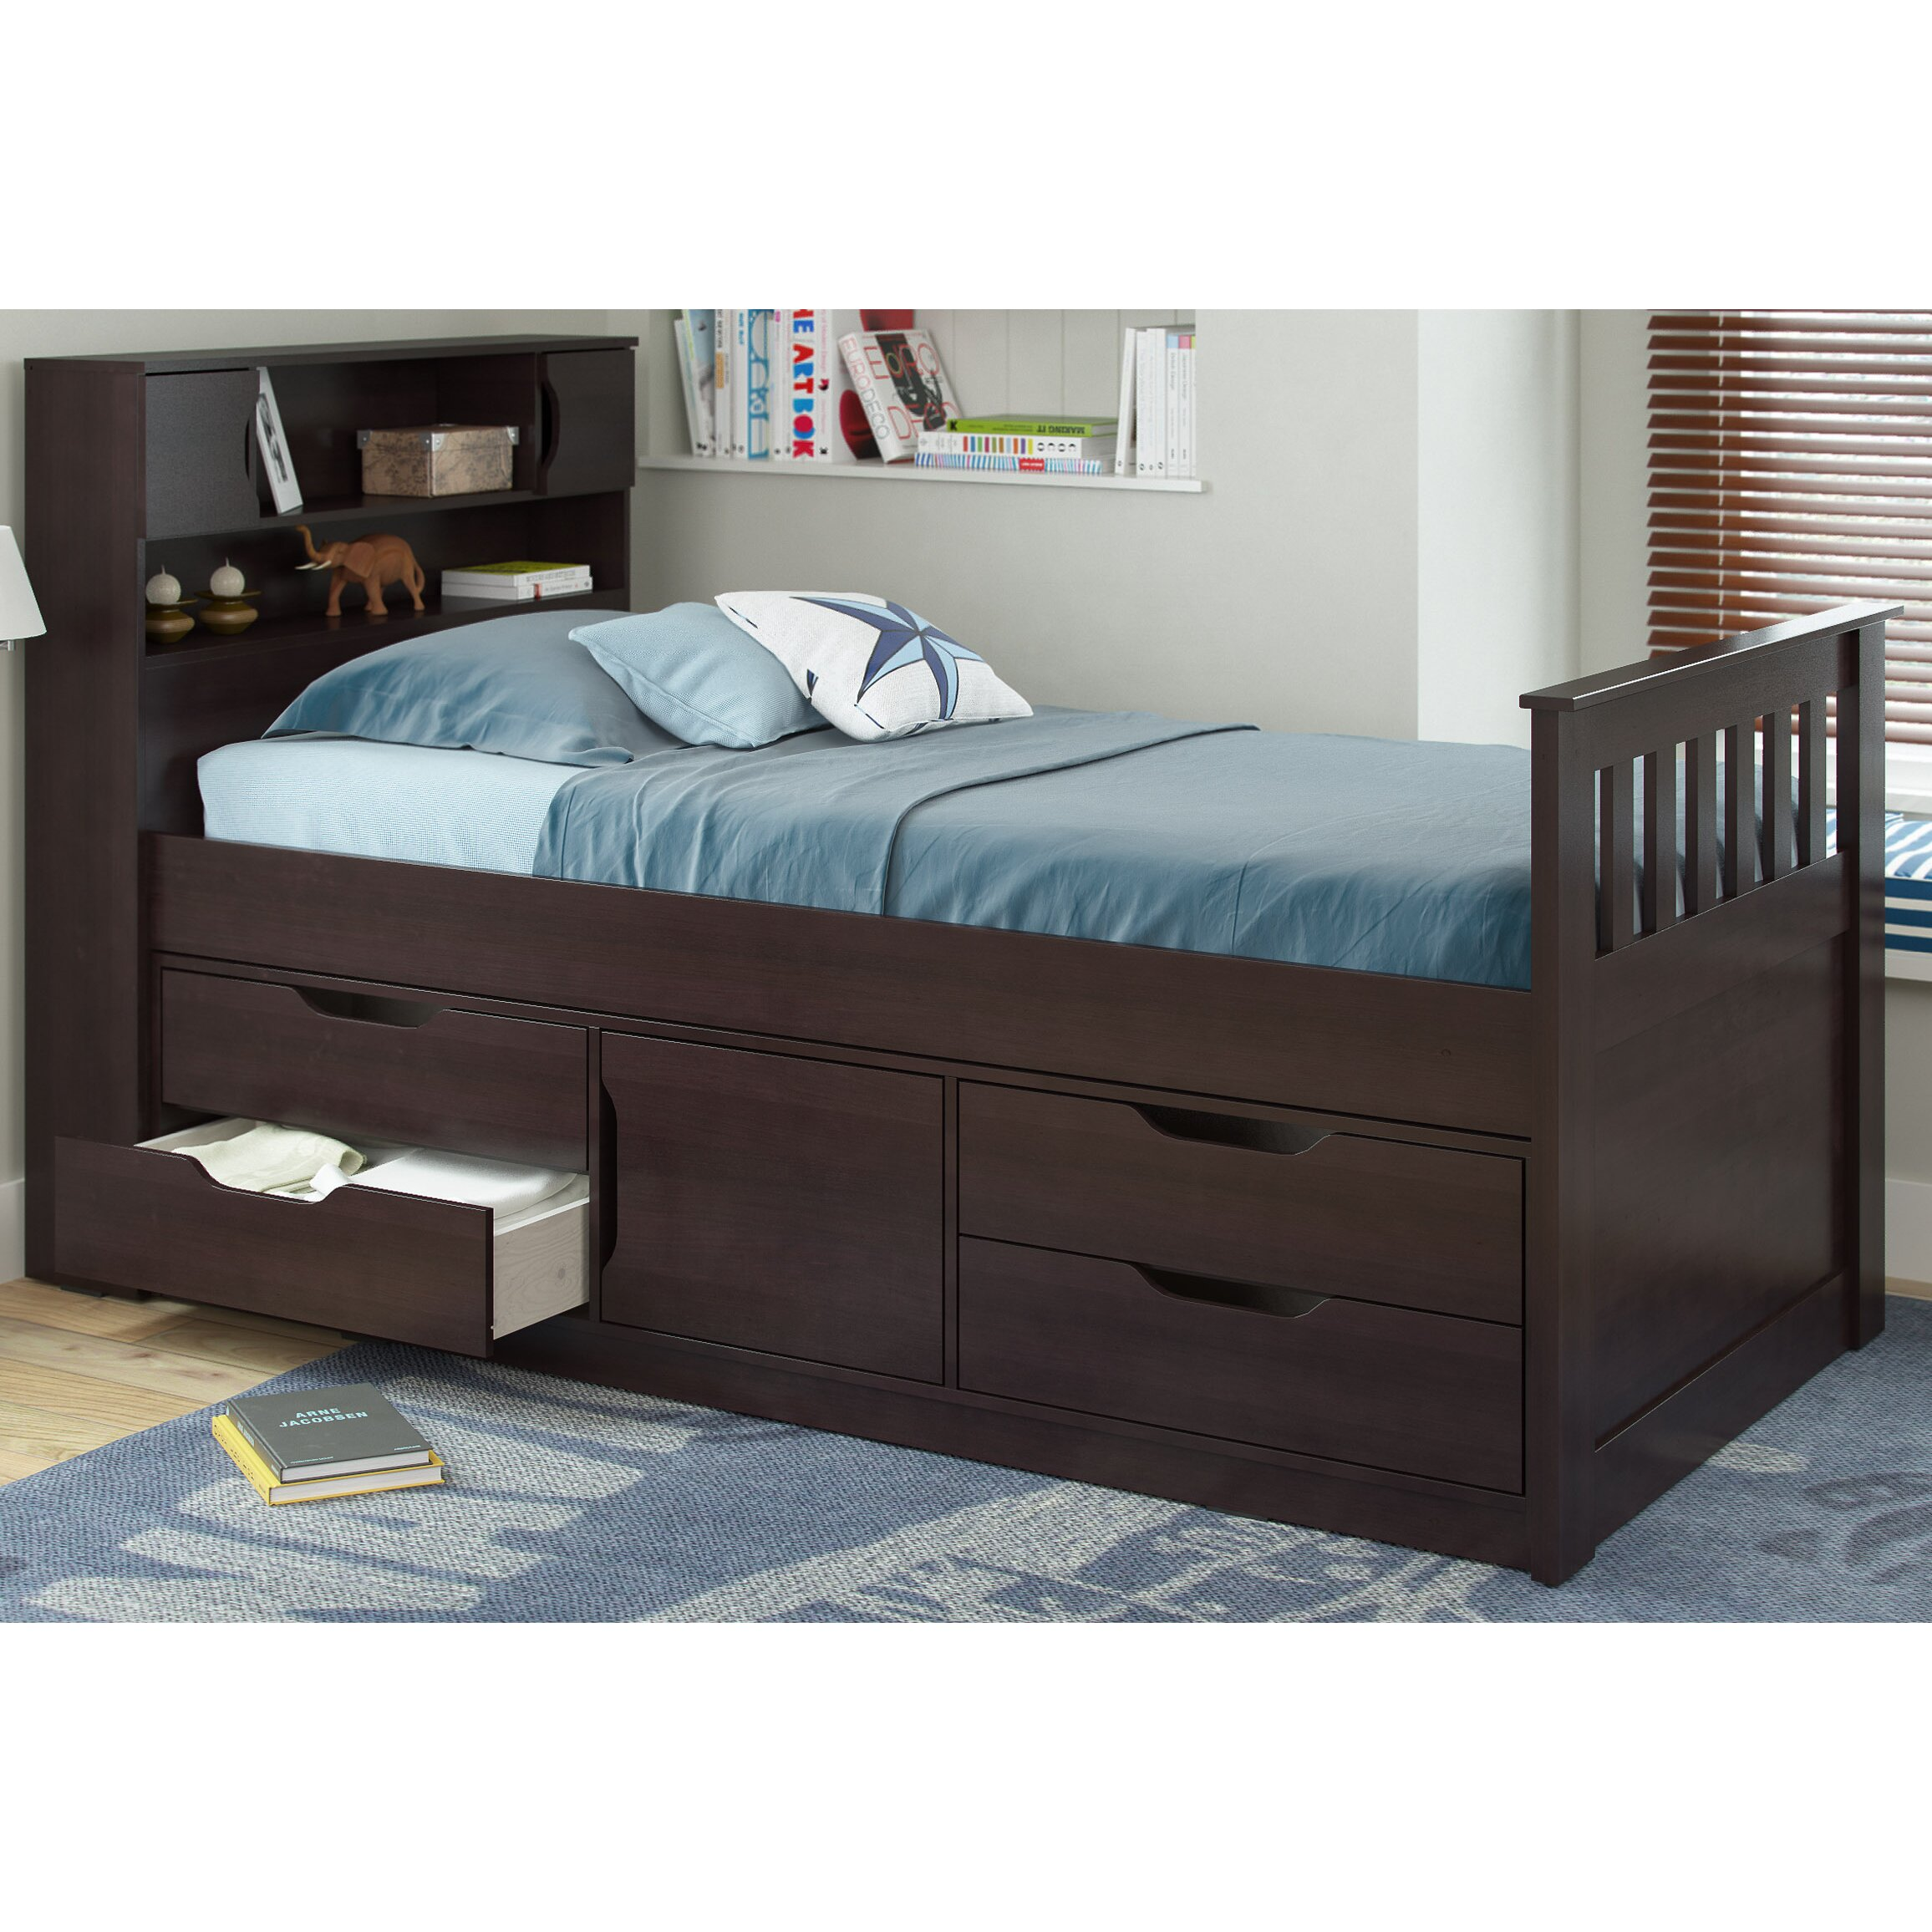 corliving madison twin captain bed with storage reviews wayfair. Black Bedroom Furniture Sets. Home Design Ideas